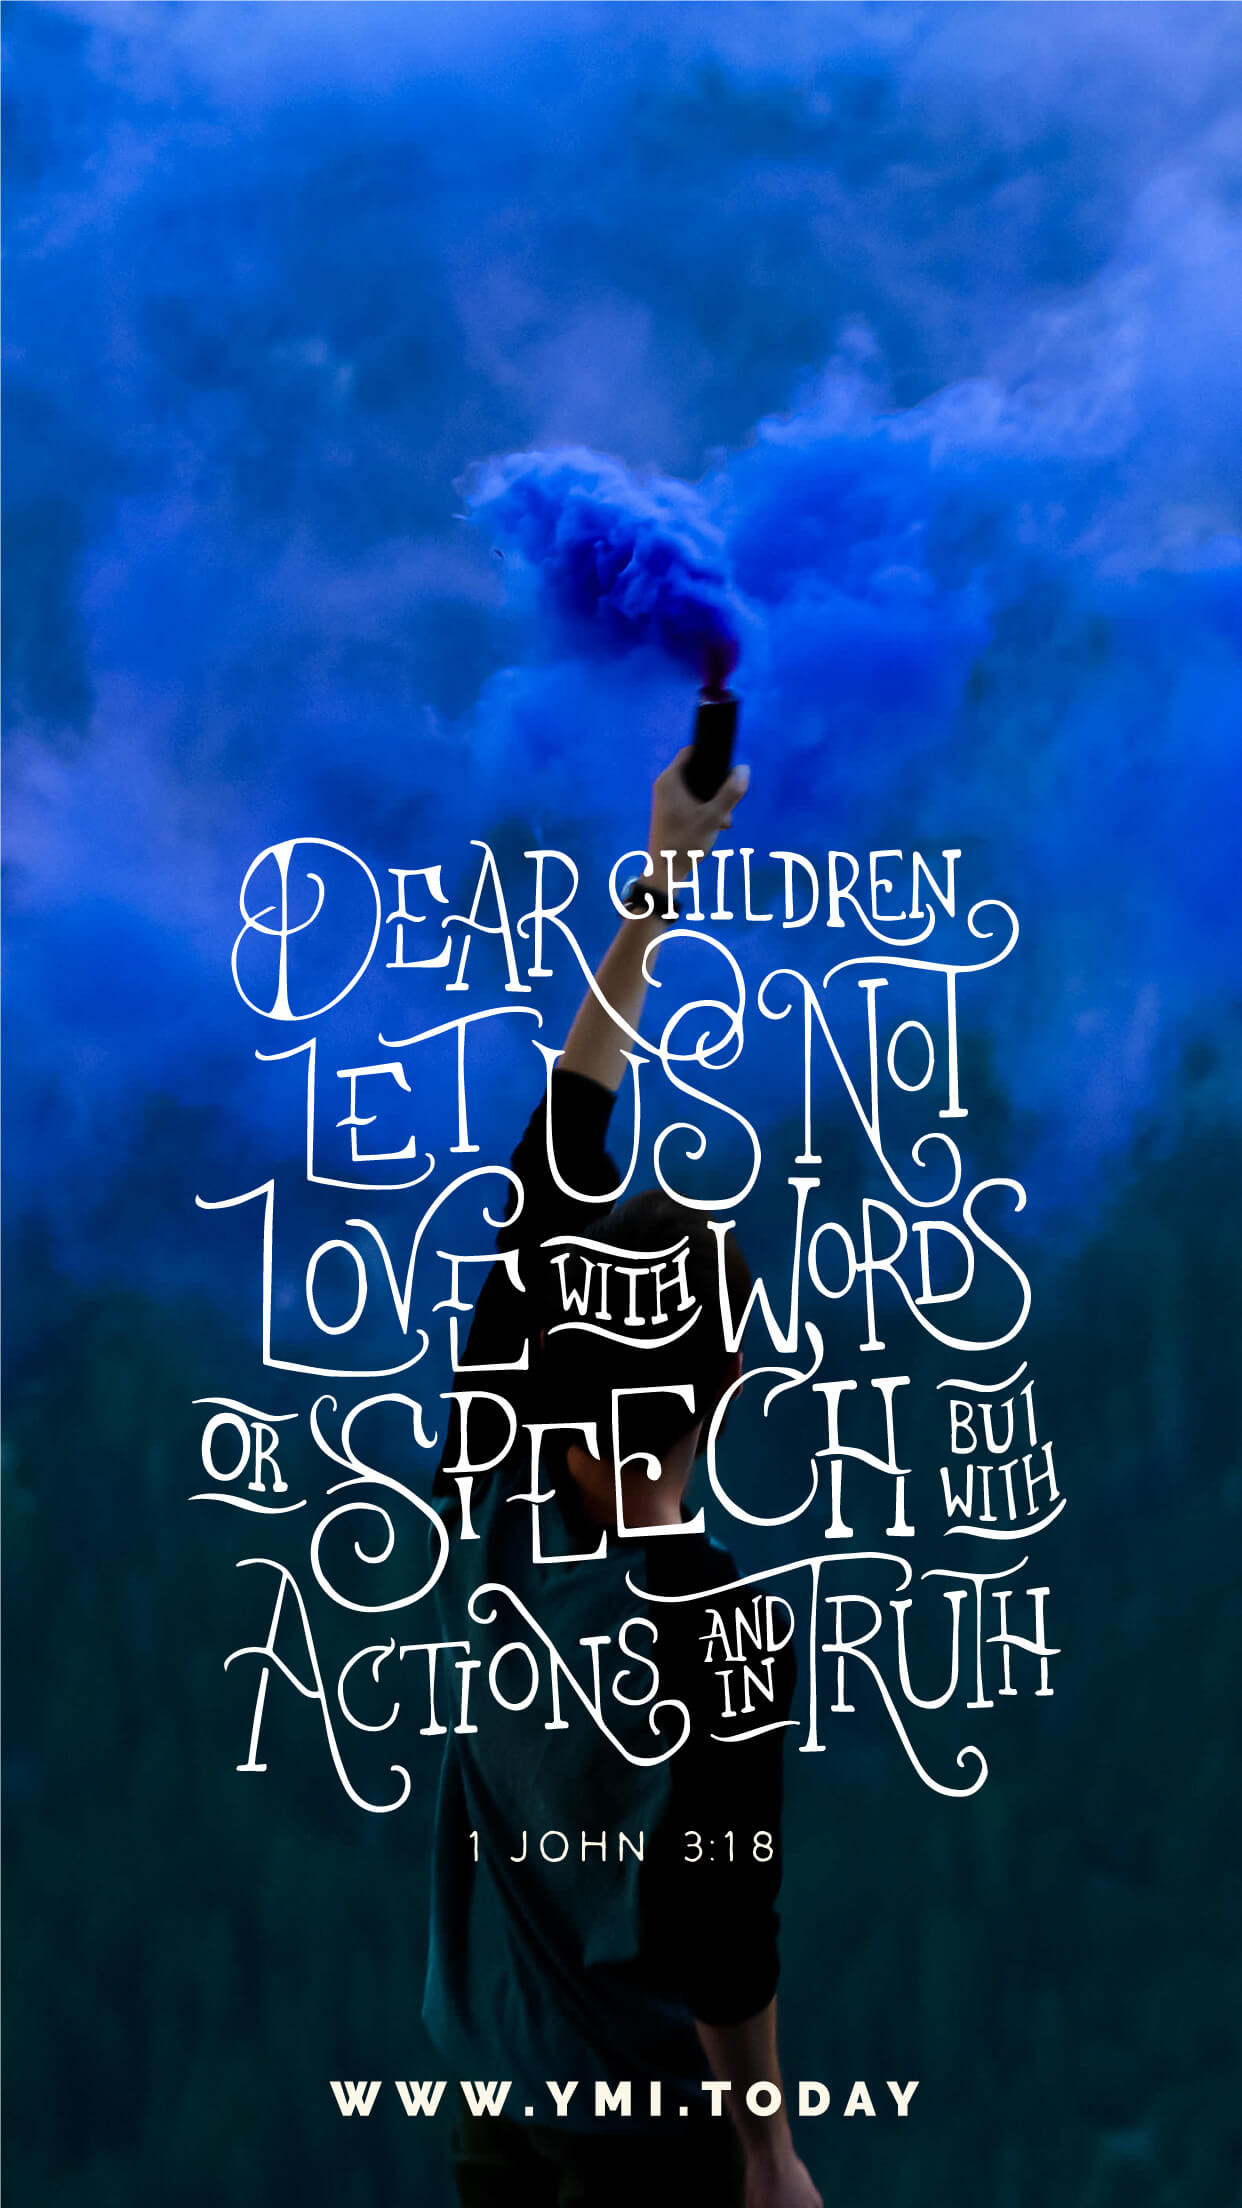 YMI September 2016 Phone Lockscreen - Dear children, let us not love with words or speech, but with actions and in truth. - 1 John 3:18